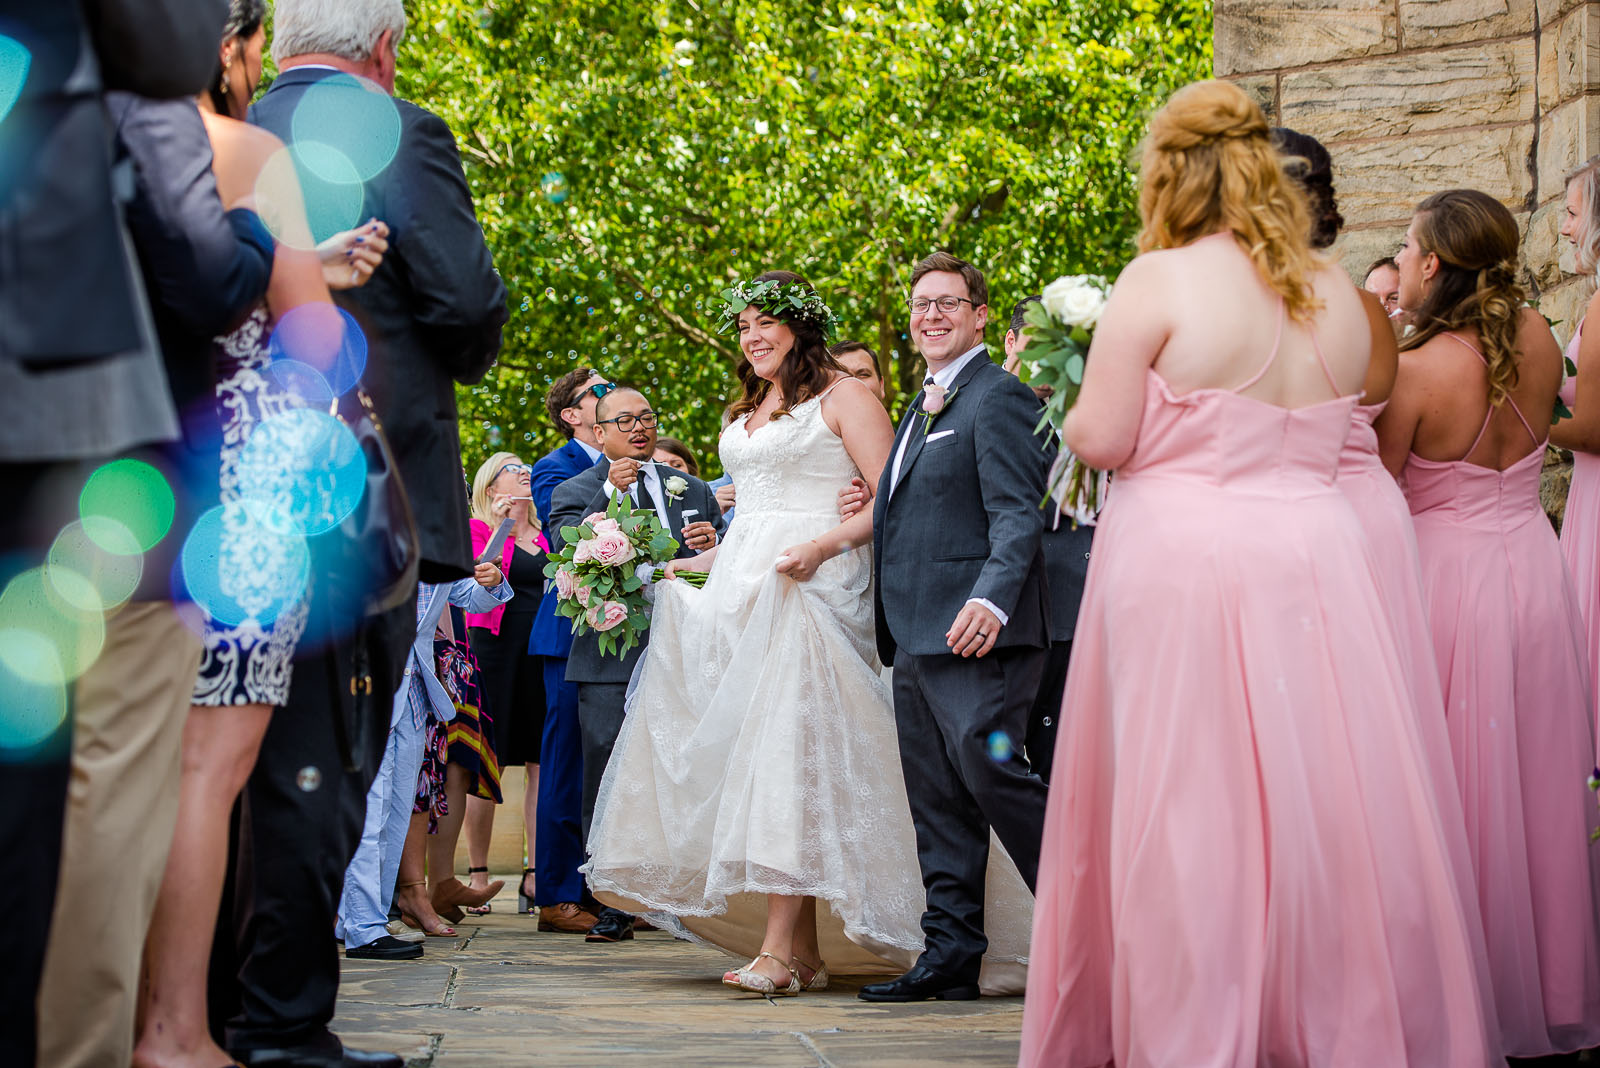 Eric_and_Christy_Photography_Blog_2018_Wed_moments-41